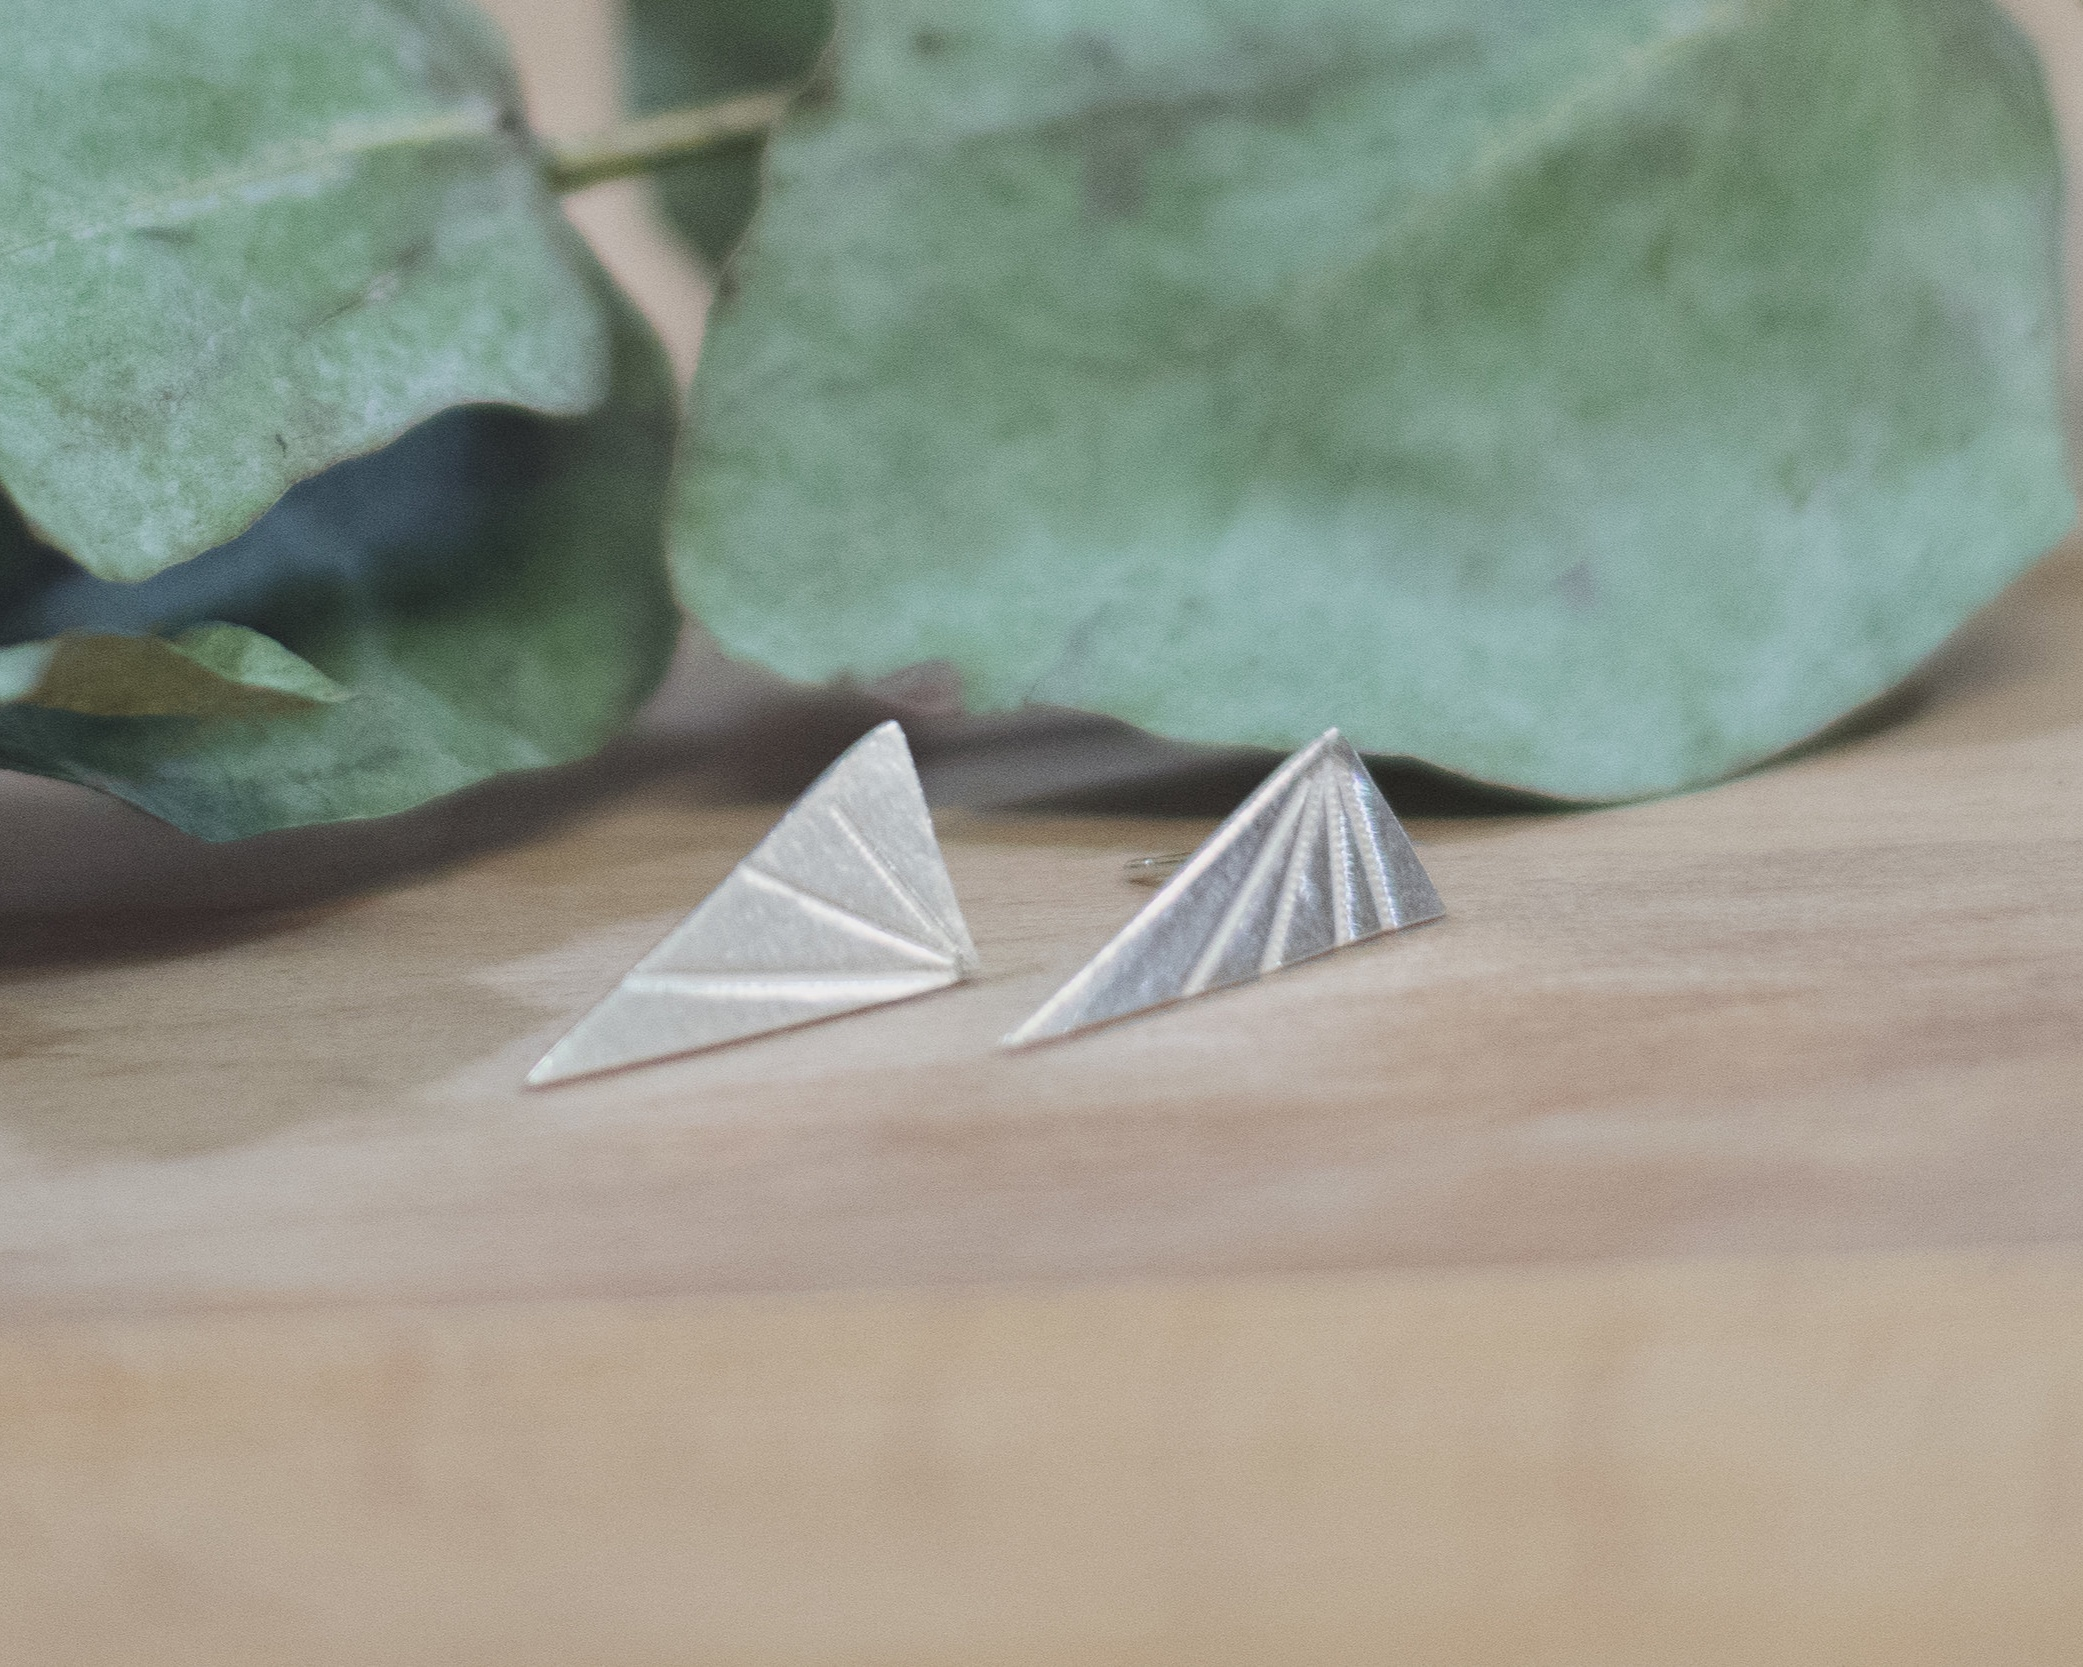 Week 6 - Cufflinks or earrings - During week 6 you will start by focussing on working with jewellery 'findings' such as ear wires, rings and clasps. Following this you will use these new skills to design and make a lovely pair of cufflinks or earrings.